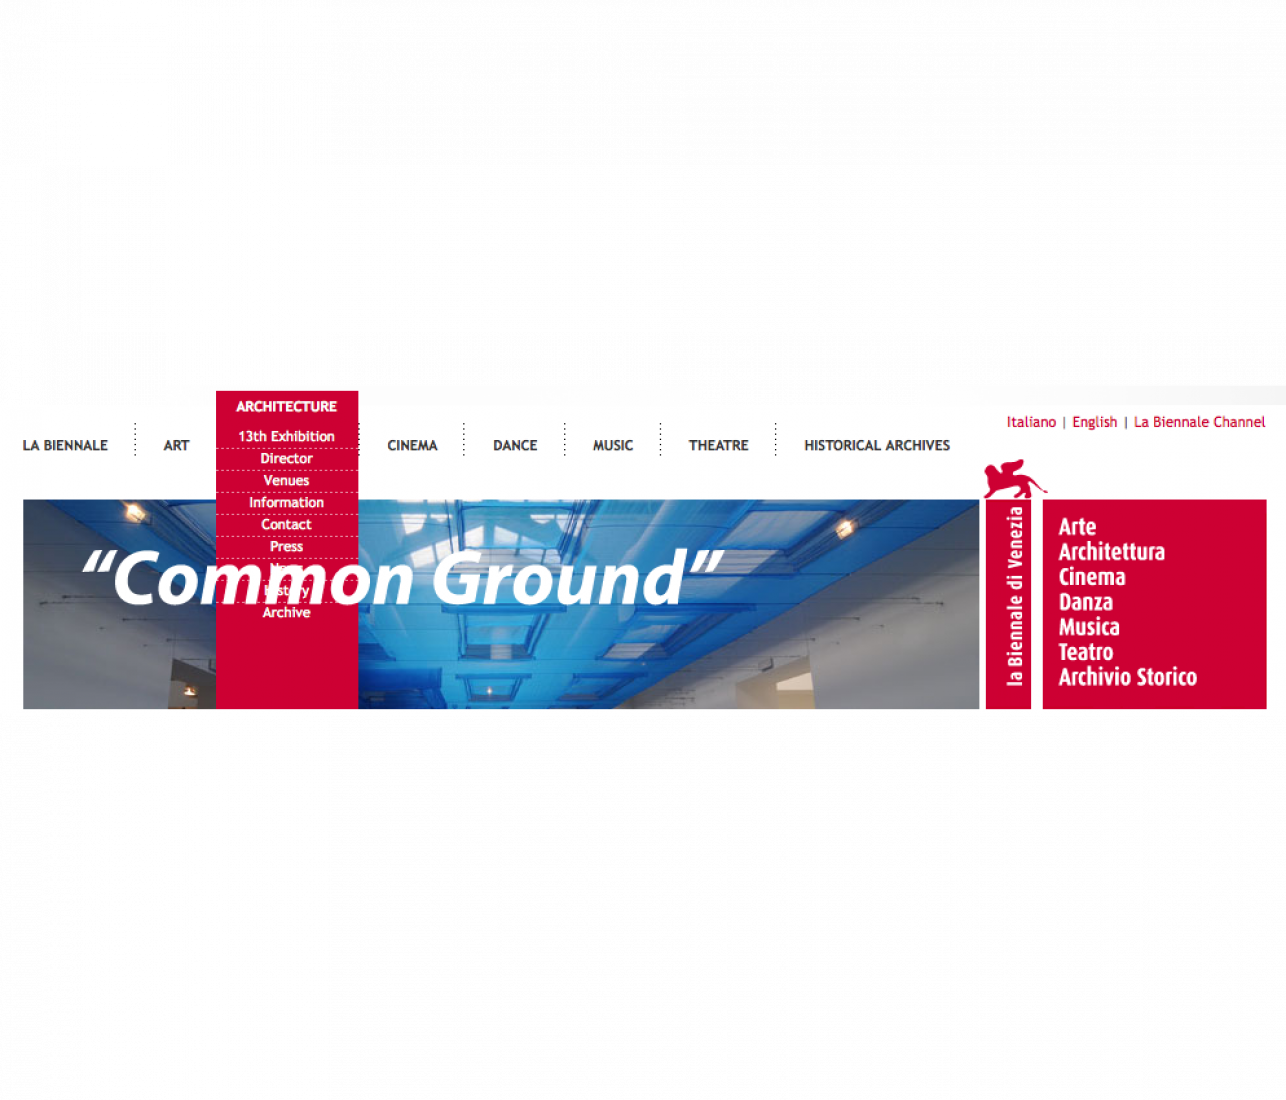 """Common Ground"" as the theme for the 13th International Venice Biennale"